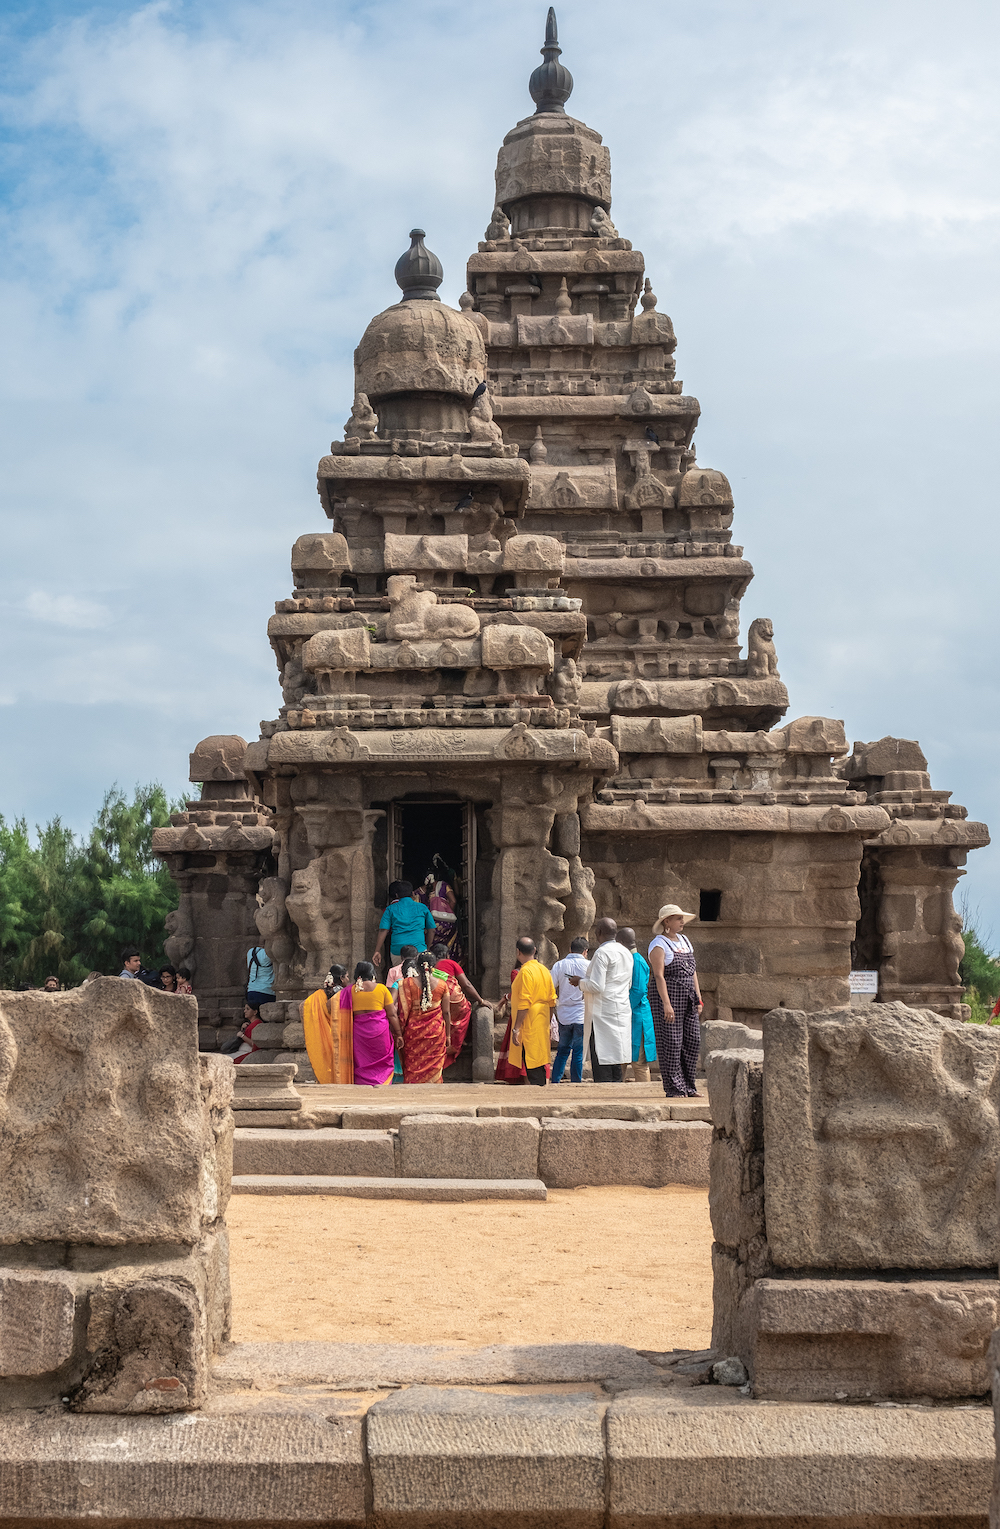 rondreis zuid india Mahabalipuram shore temple